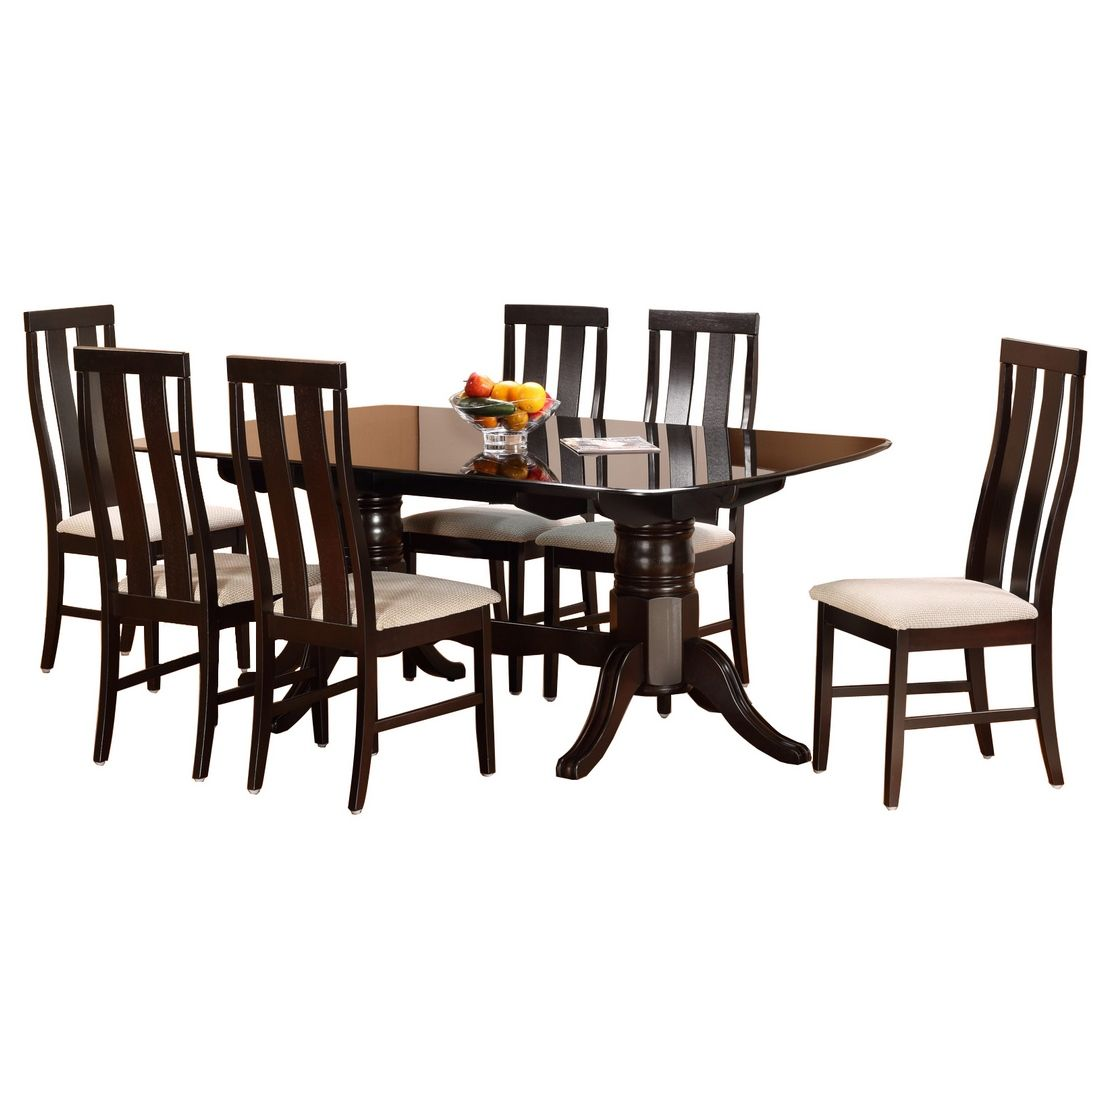 VENICE PLUS DINING TABLE X SOLO LT - 6x4 dining table